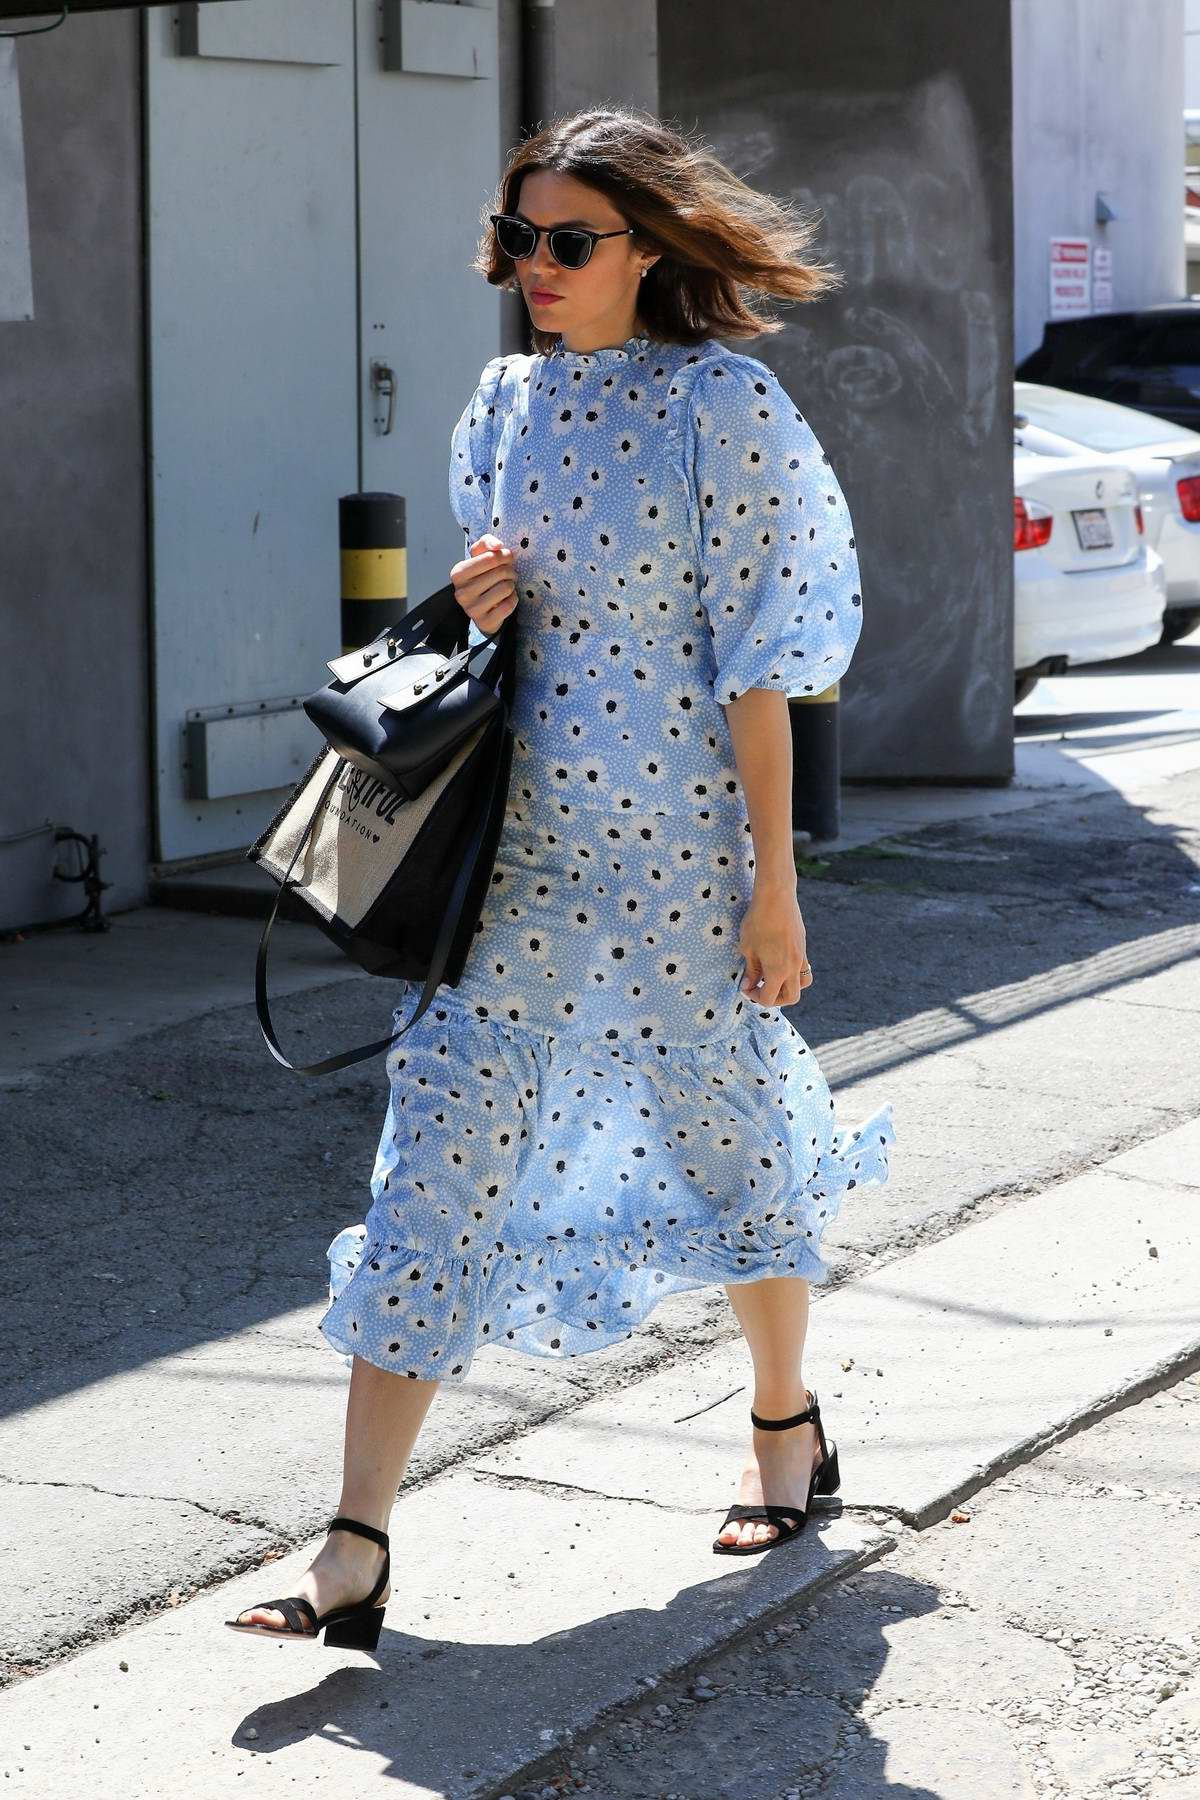 Mandy Moore wears a blue floral dress during a trip to the Nine One Zero salon in West Hollywood, Los Angeles